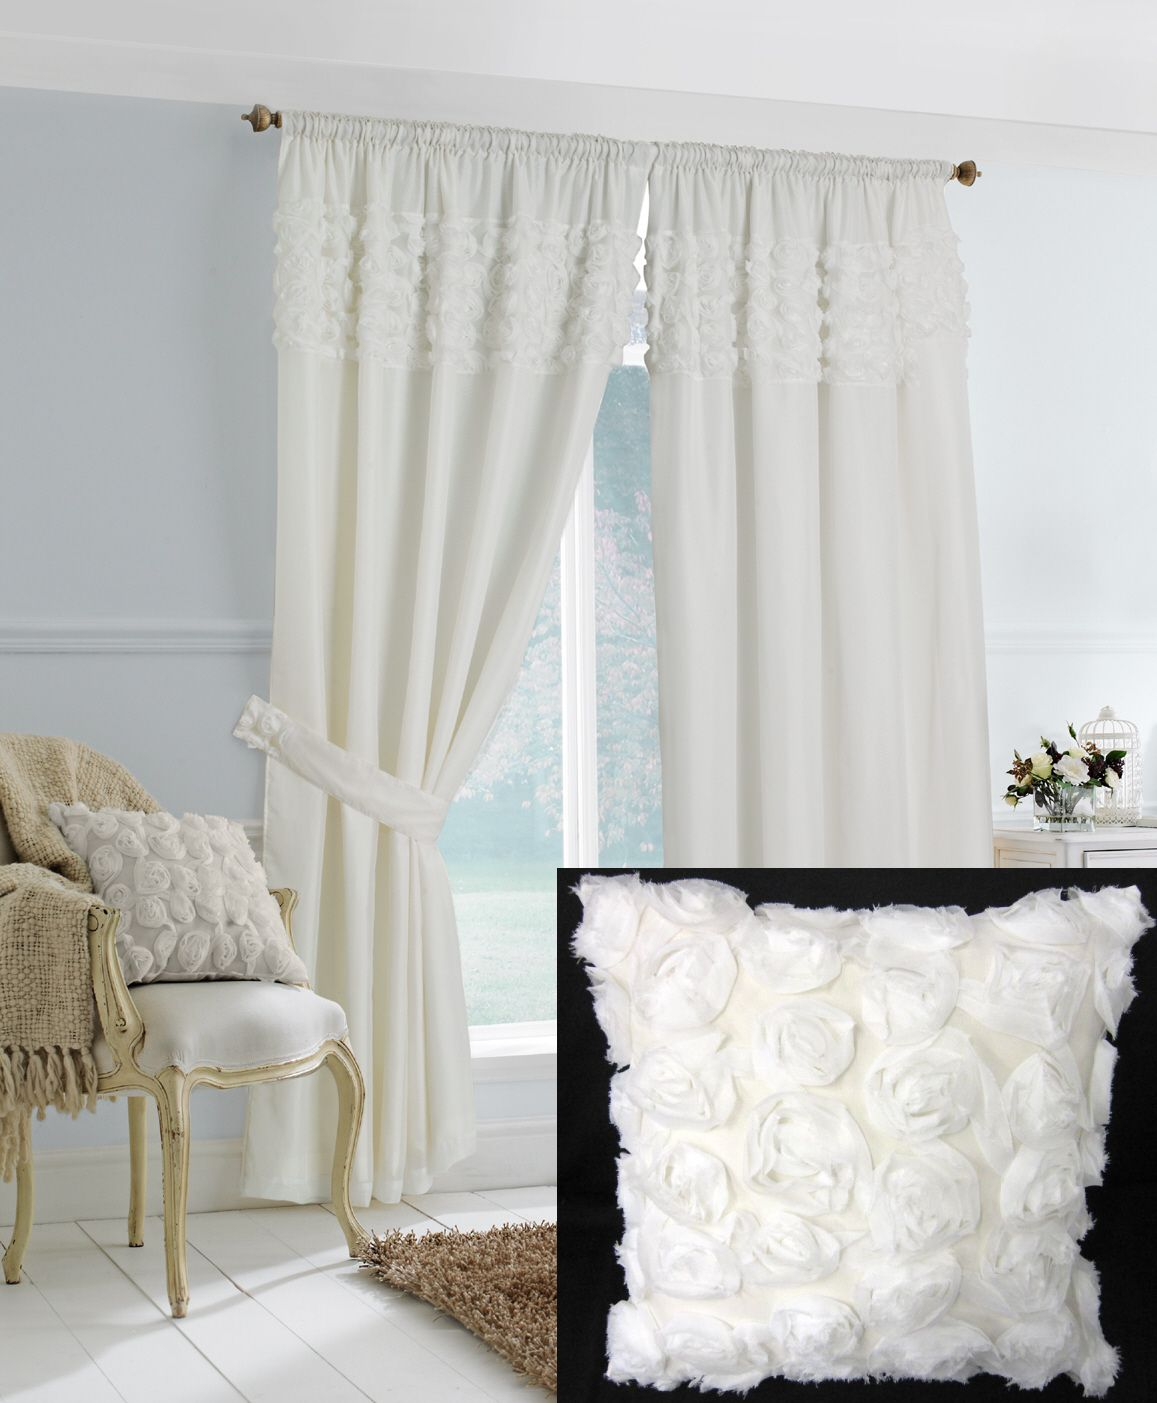 Basement window coverings outside  superb cream white lined voile ruffle floral pencil pleat curtains